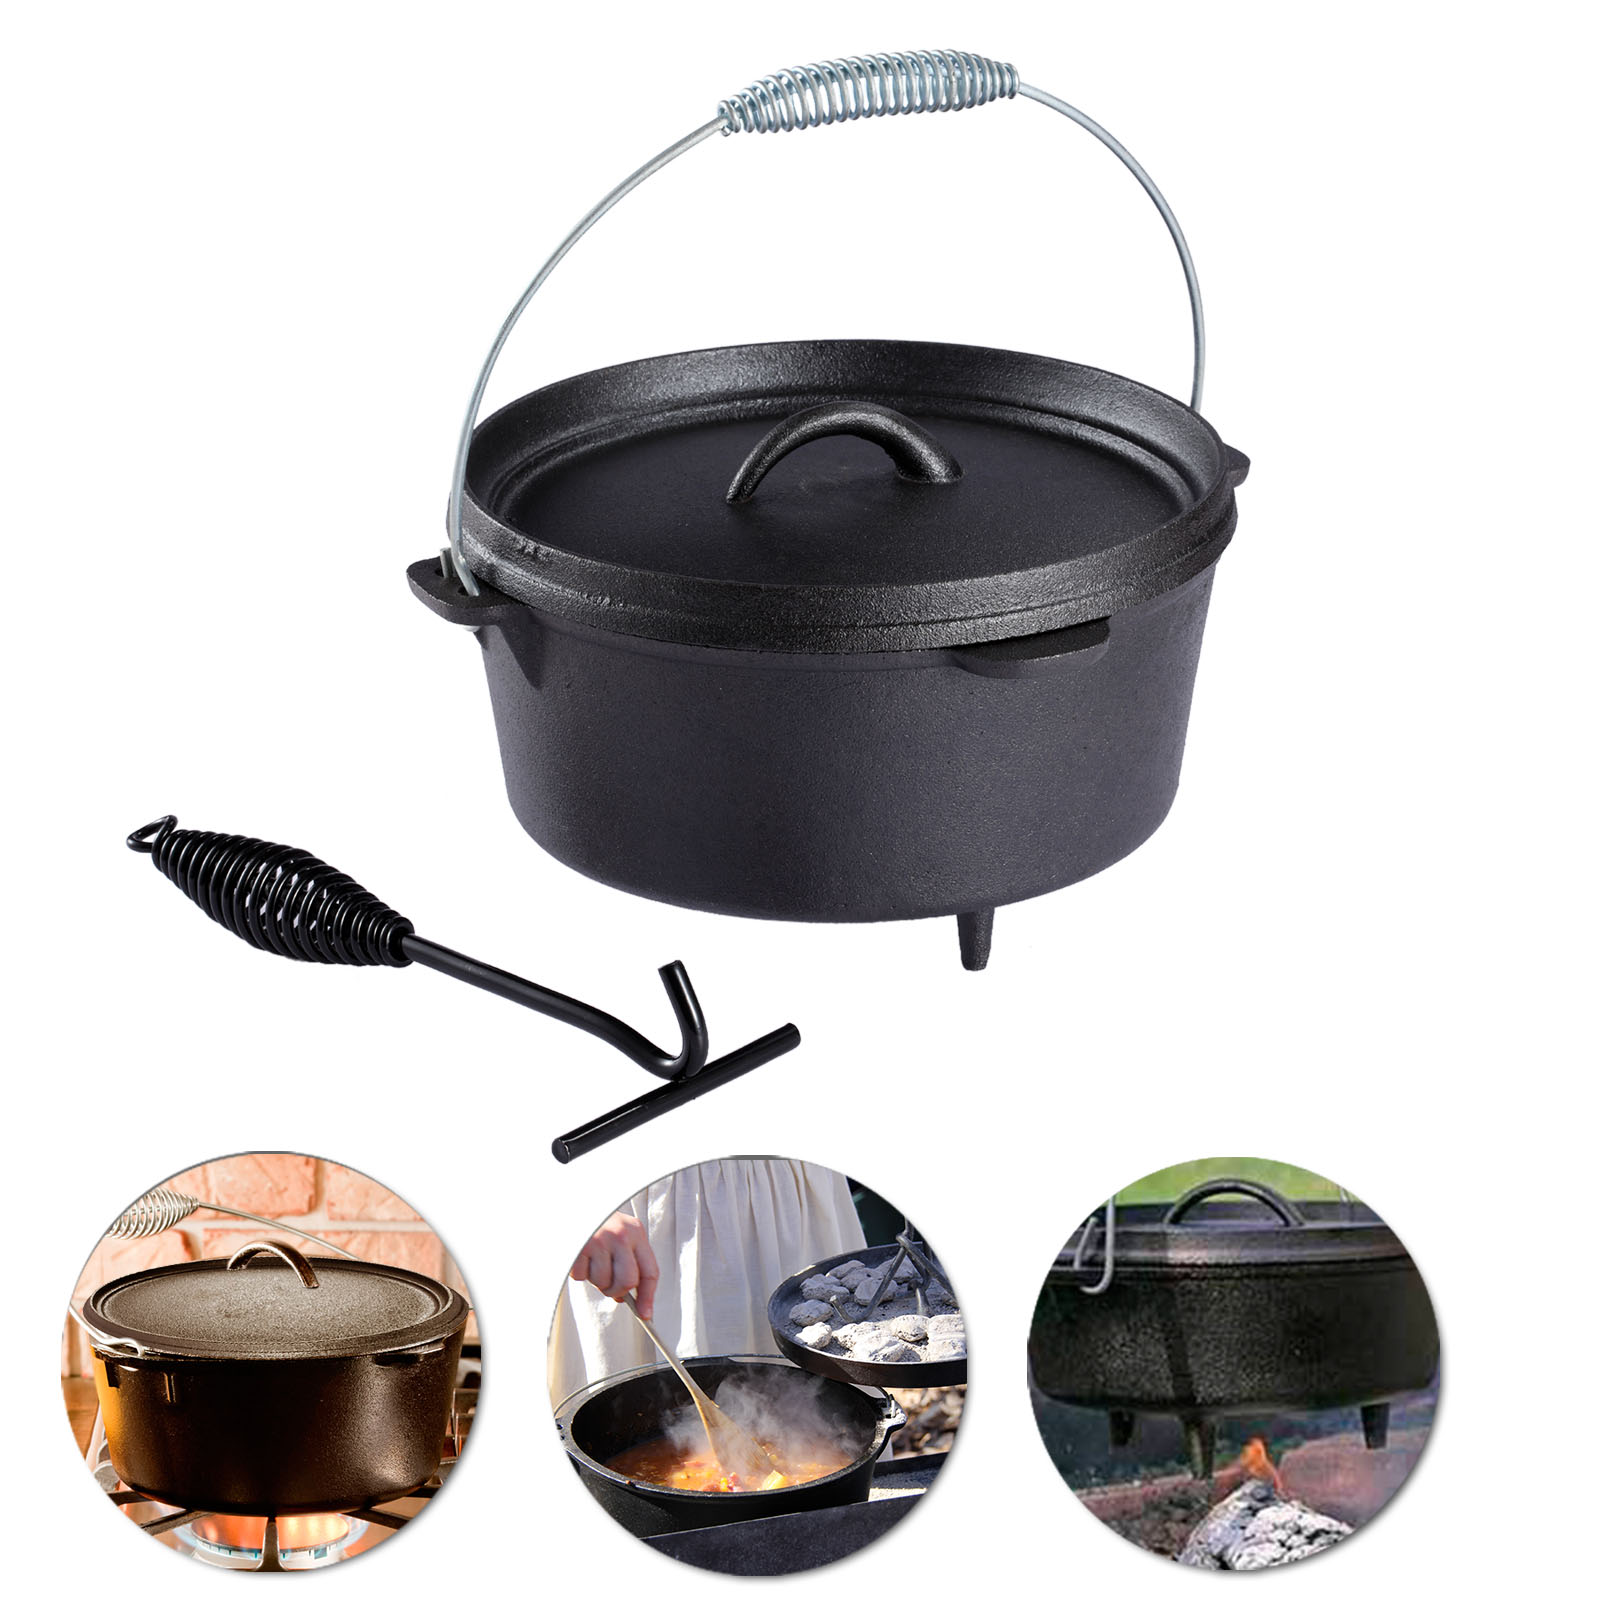 dutch oven outdoor cooking pot bushcraft cast iron